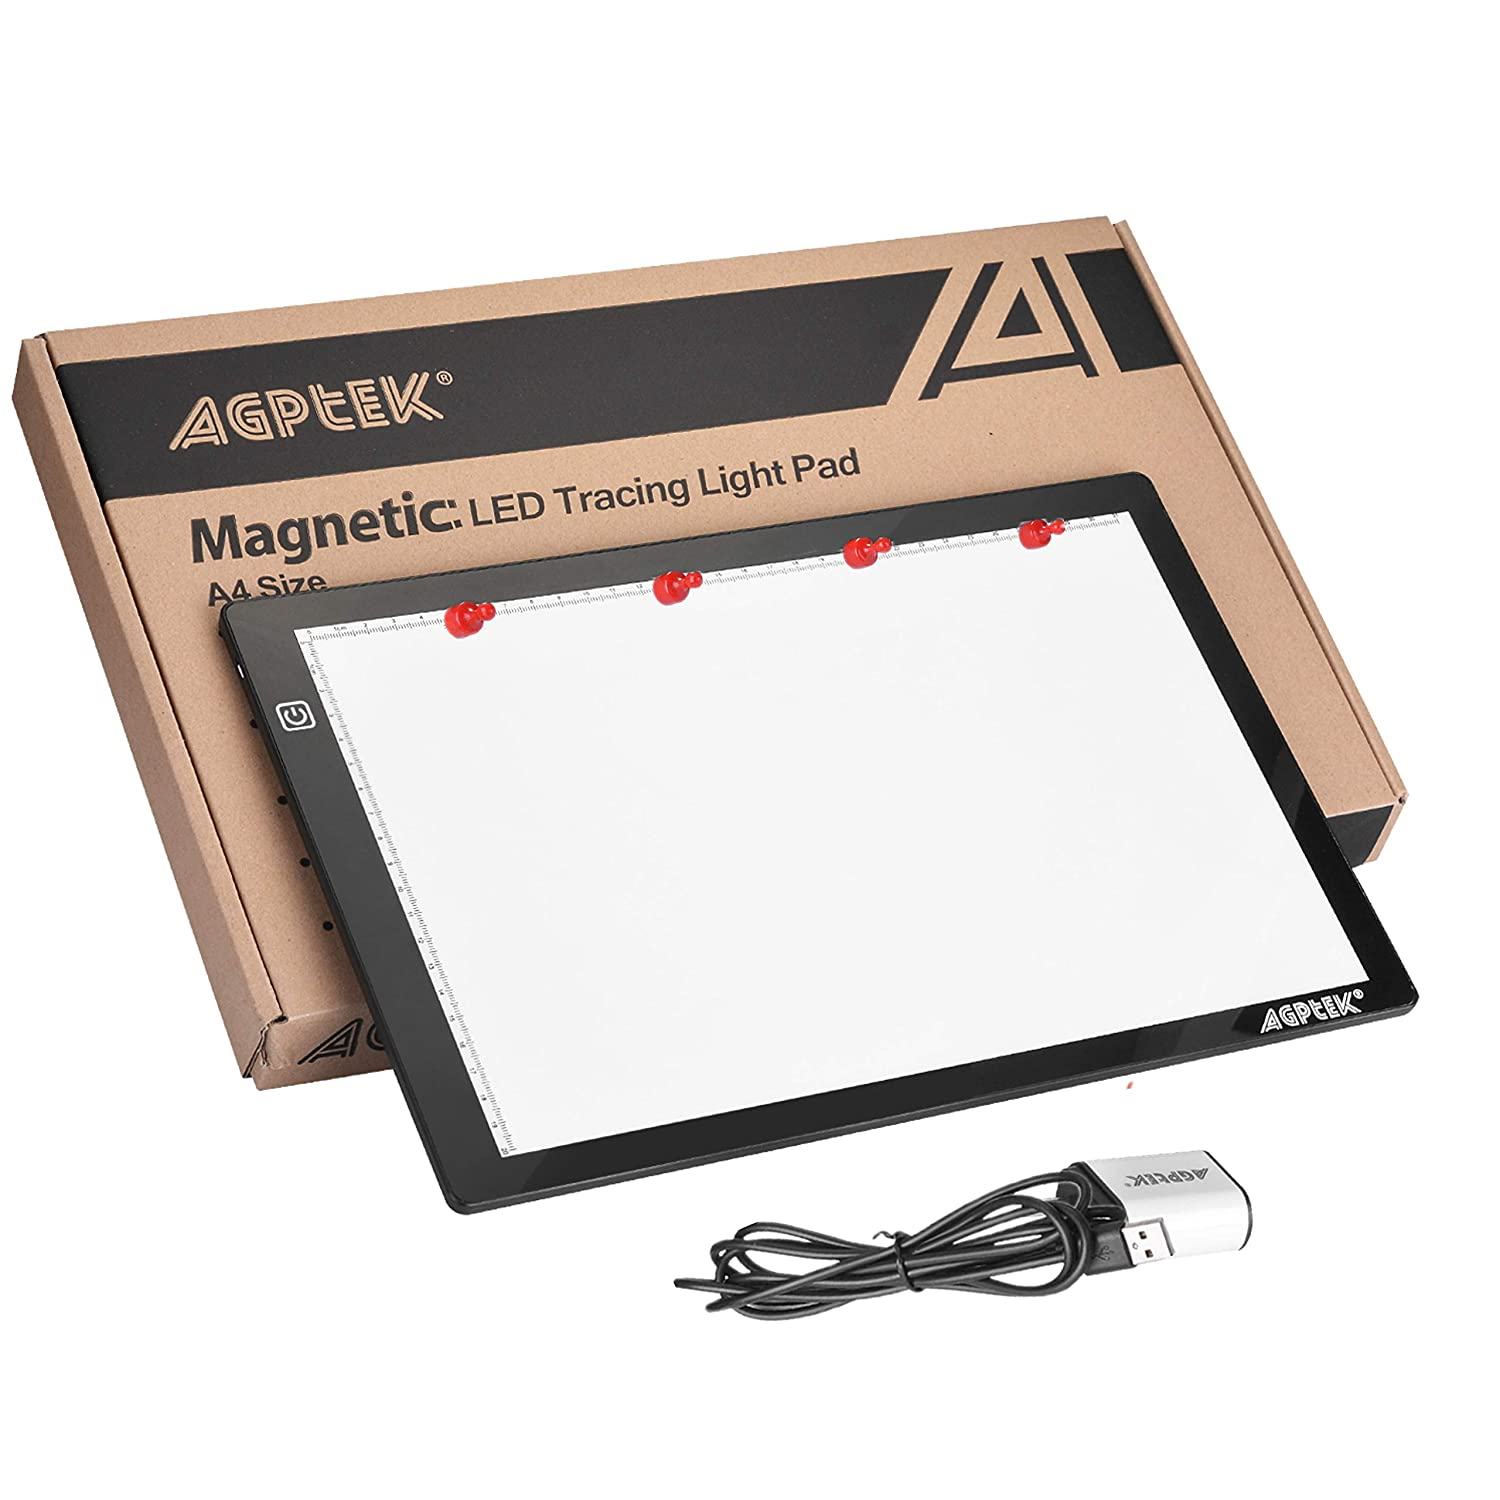 A3 Drawing Pad, AGPtEK Adjustable Brightness Tattoo Tracing Pad, LED Art Graphics Table Light Box for Aniamtion, Sketching, Designing, Stencilling, Drawing,Sewing LYSB018RVZ2MY-ELECTRNCS